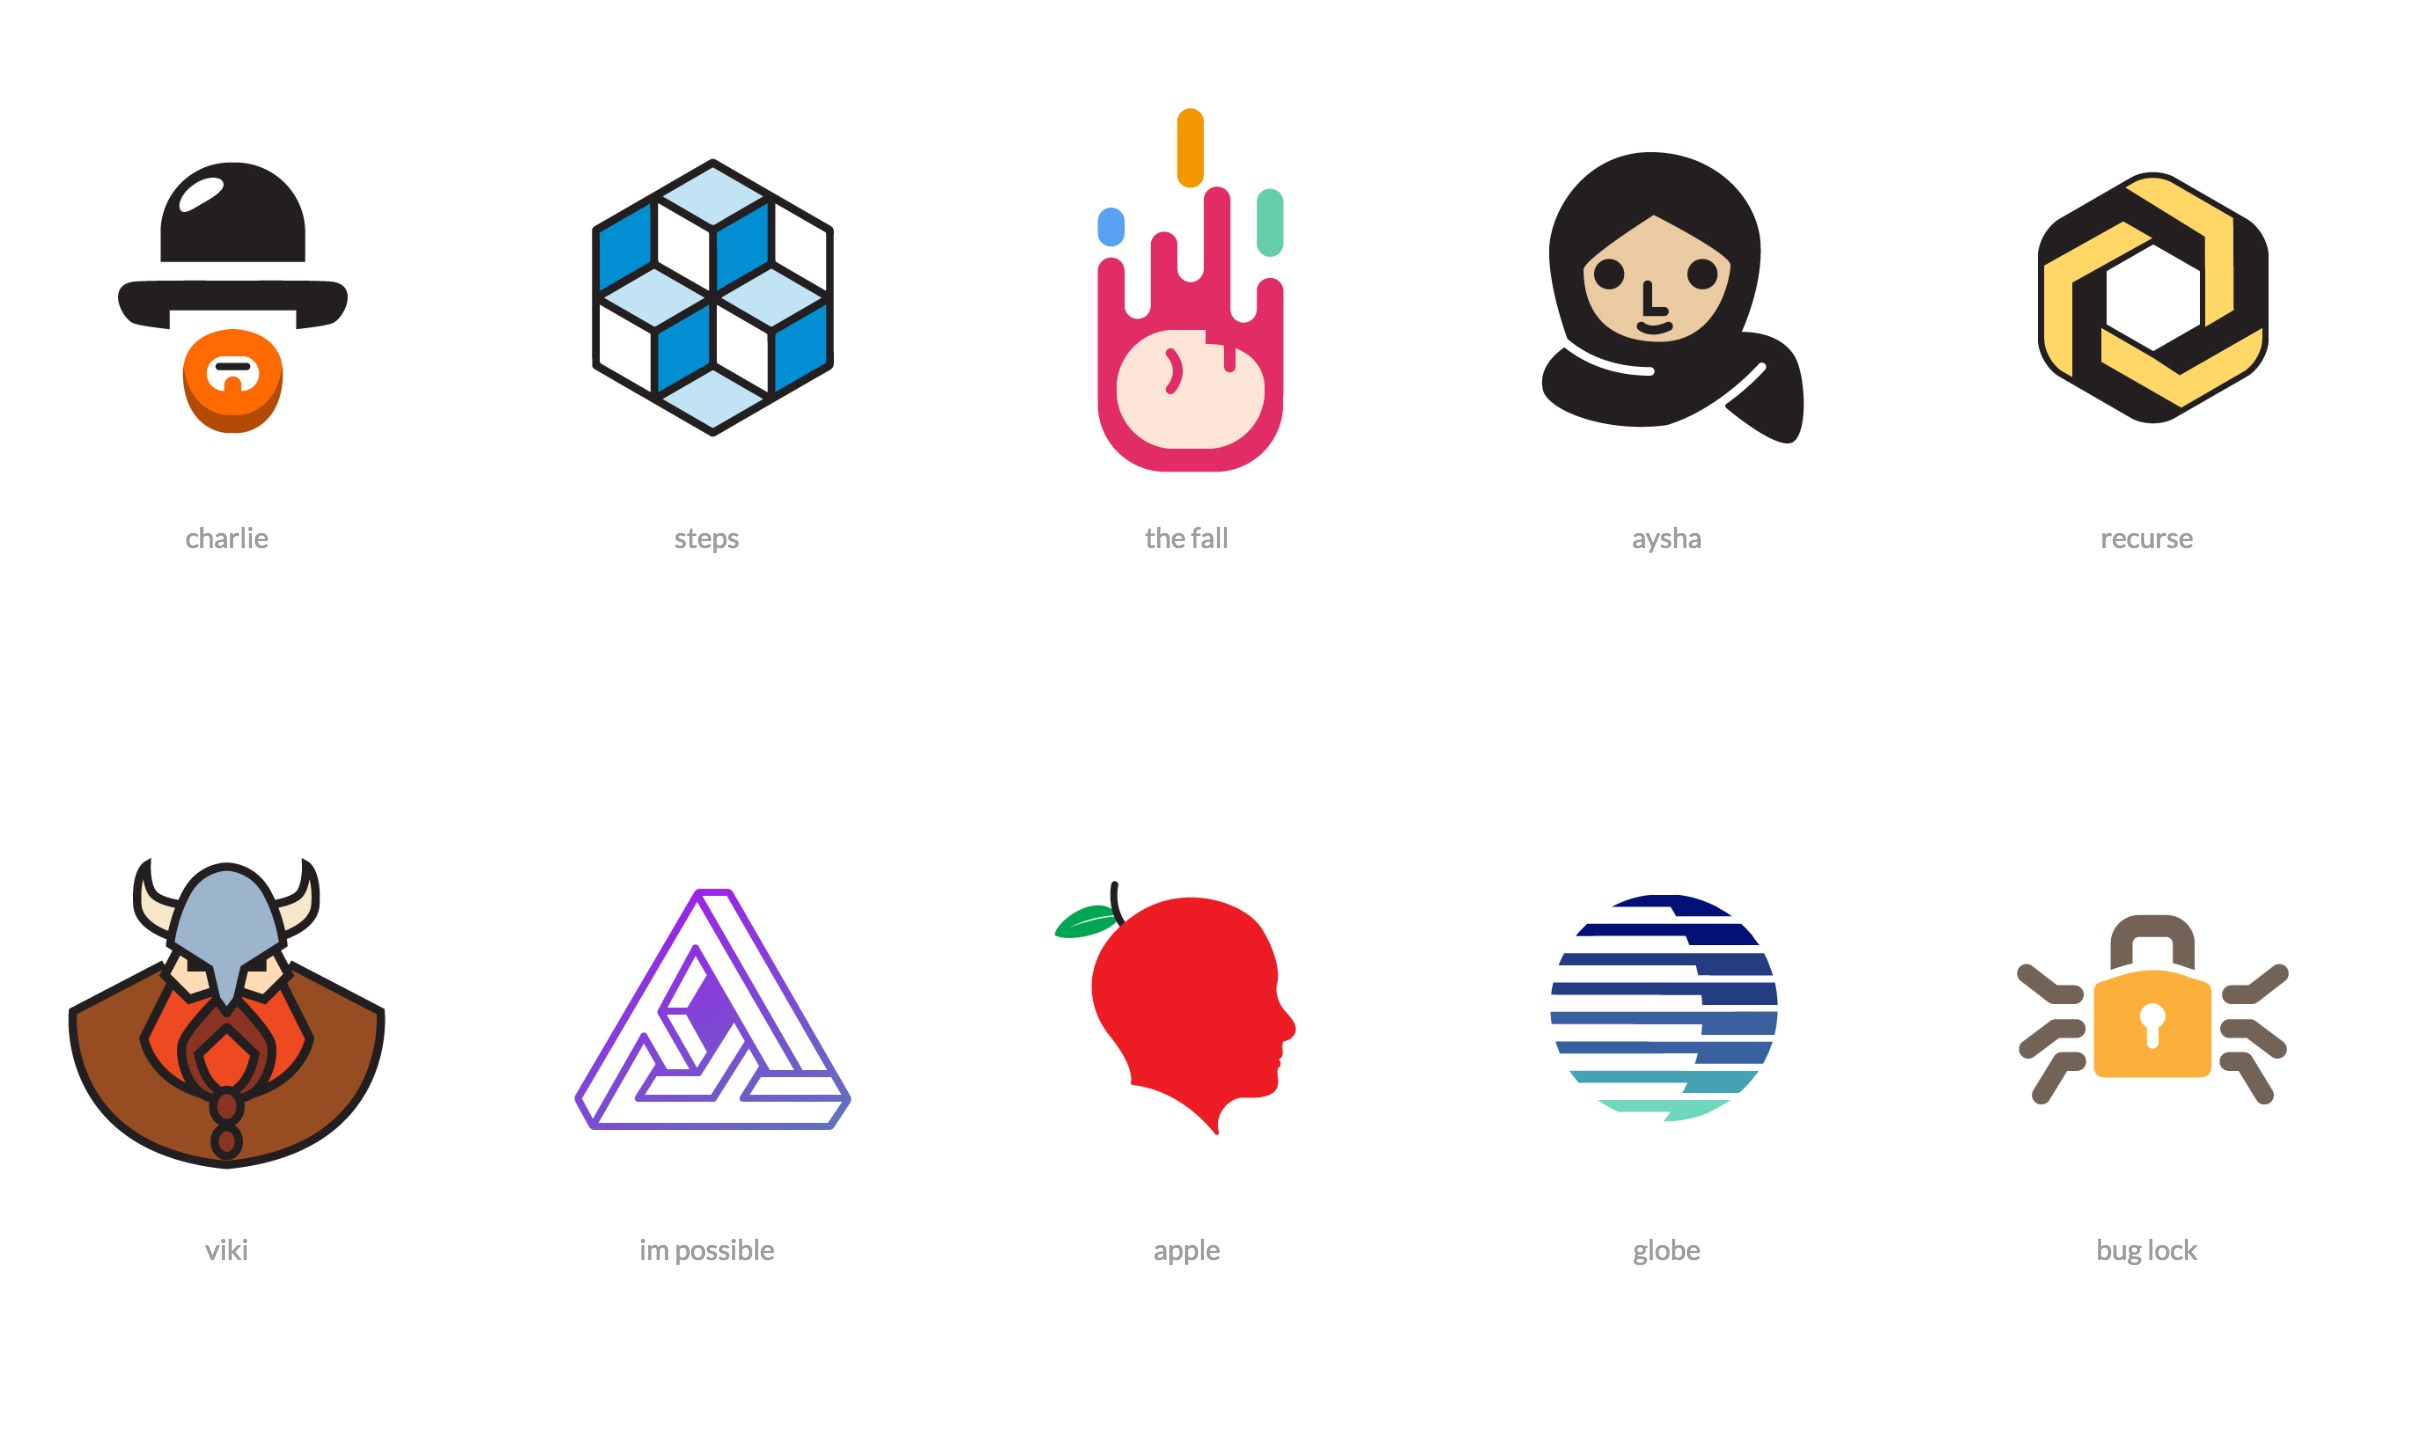 Open Logo - Free Logos for Open Source Projects